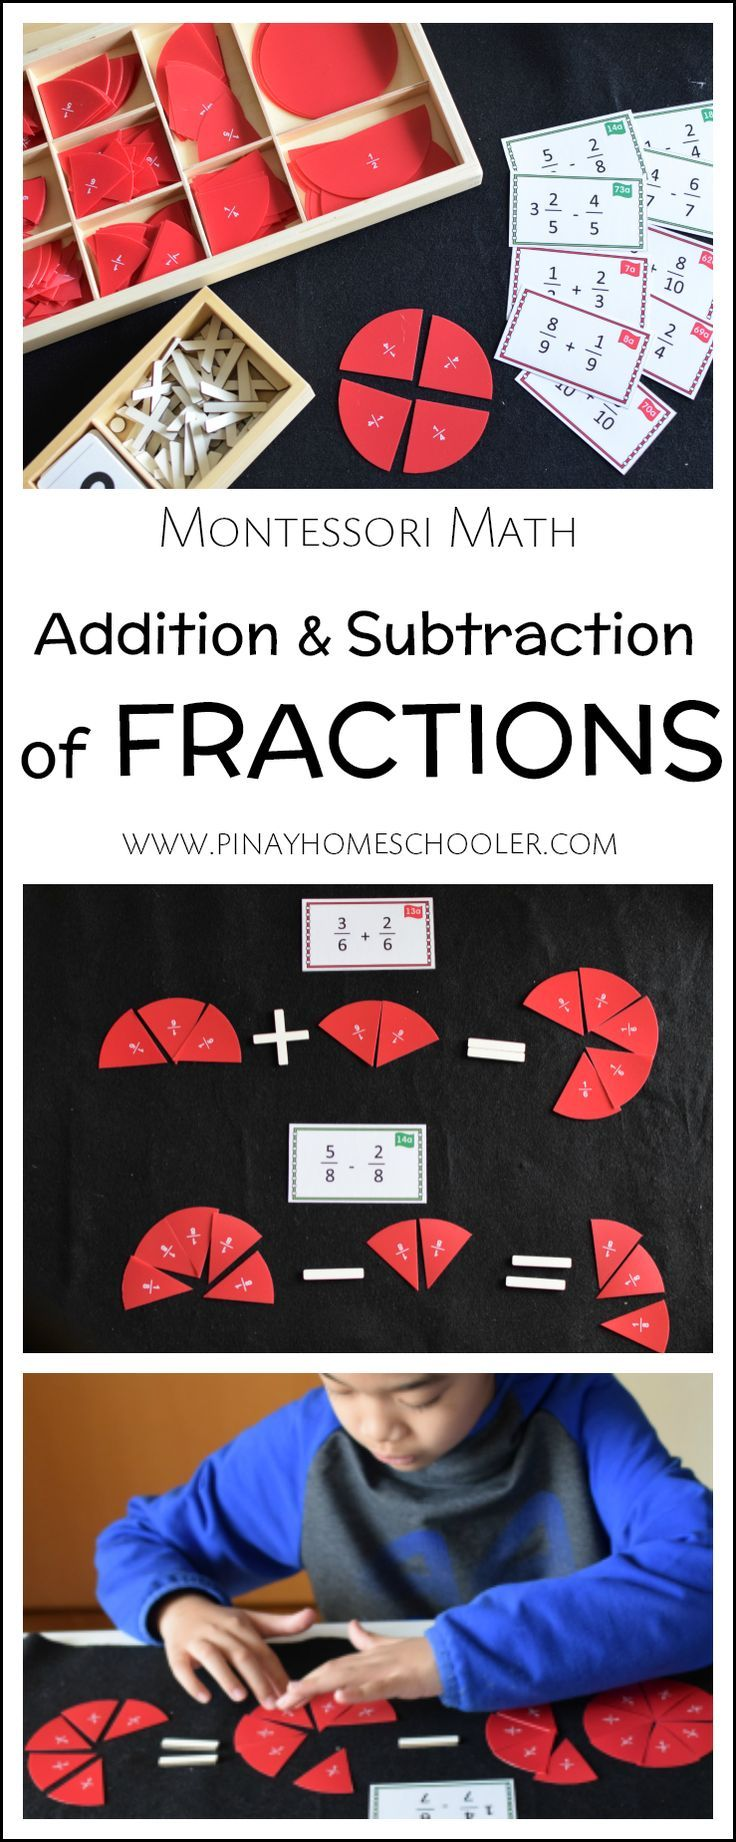 Learning how to add and subtraction fractions with the same denominator the Montessori way #montessori #math #fractions #elementary #gradeschool #homeschool